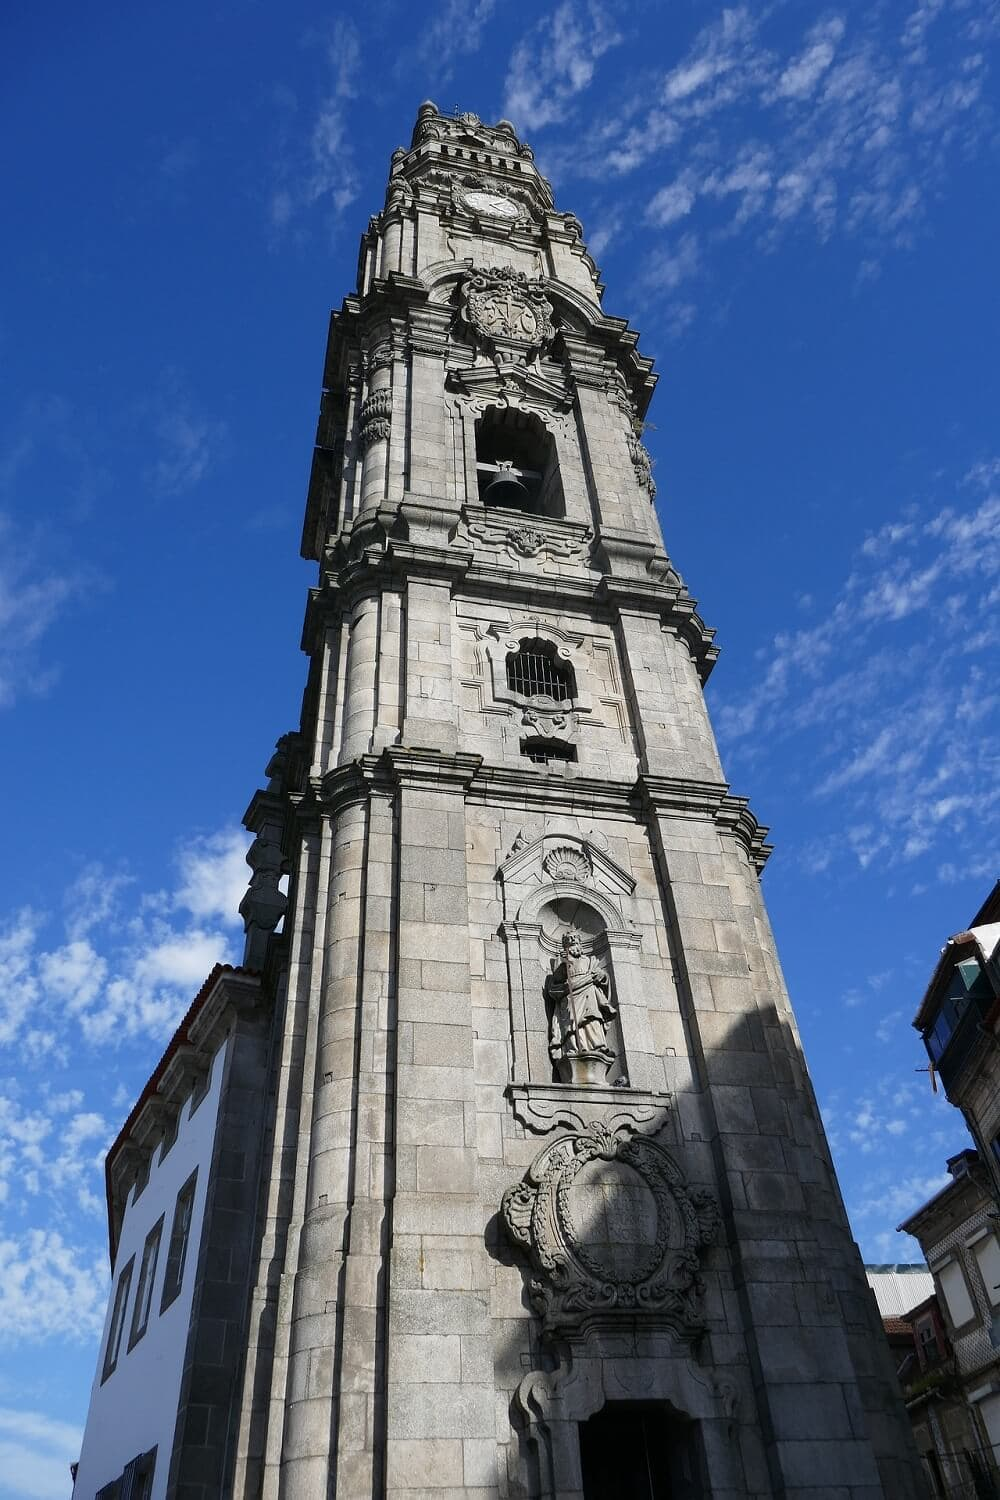 The Clerigos Tower is worth a stop on your Porto Harry Potter Tour